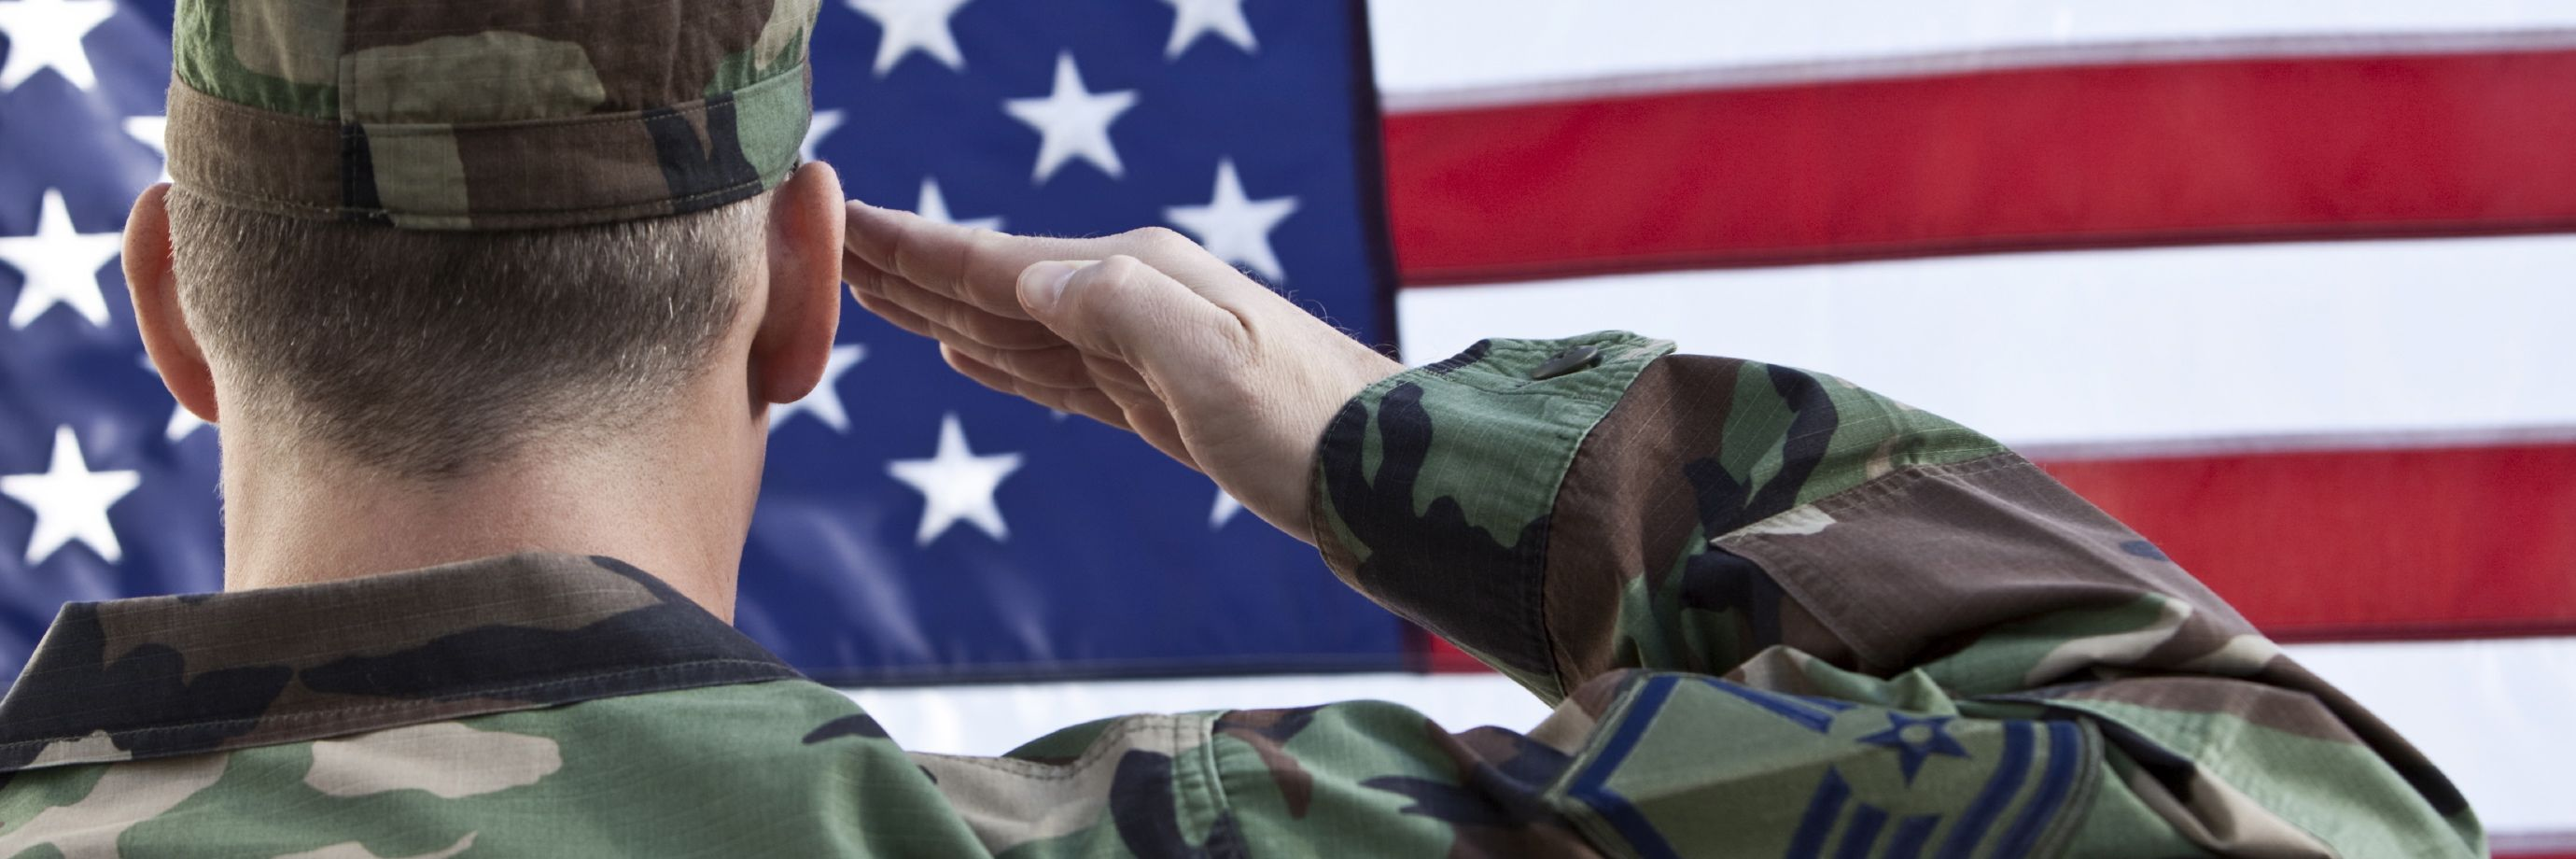 soldiers past and present america honor our veterans essay When is the right time to honor our military heroes for hundreds of years our military troops have sacrificed their lives for america's freedom.